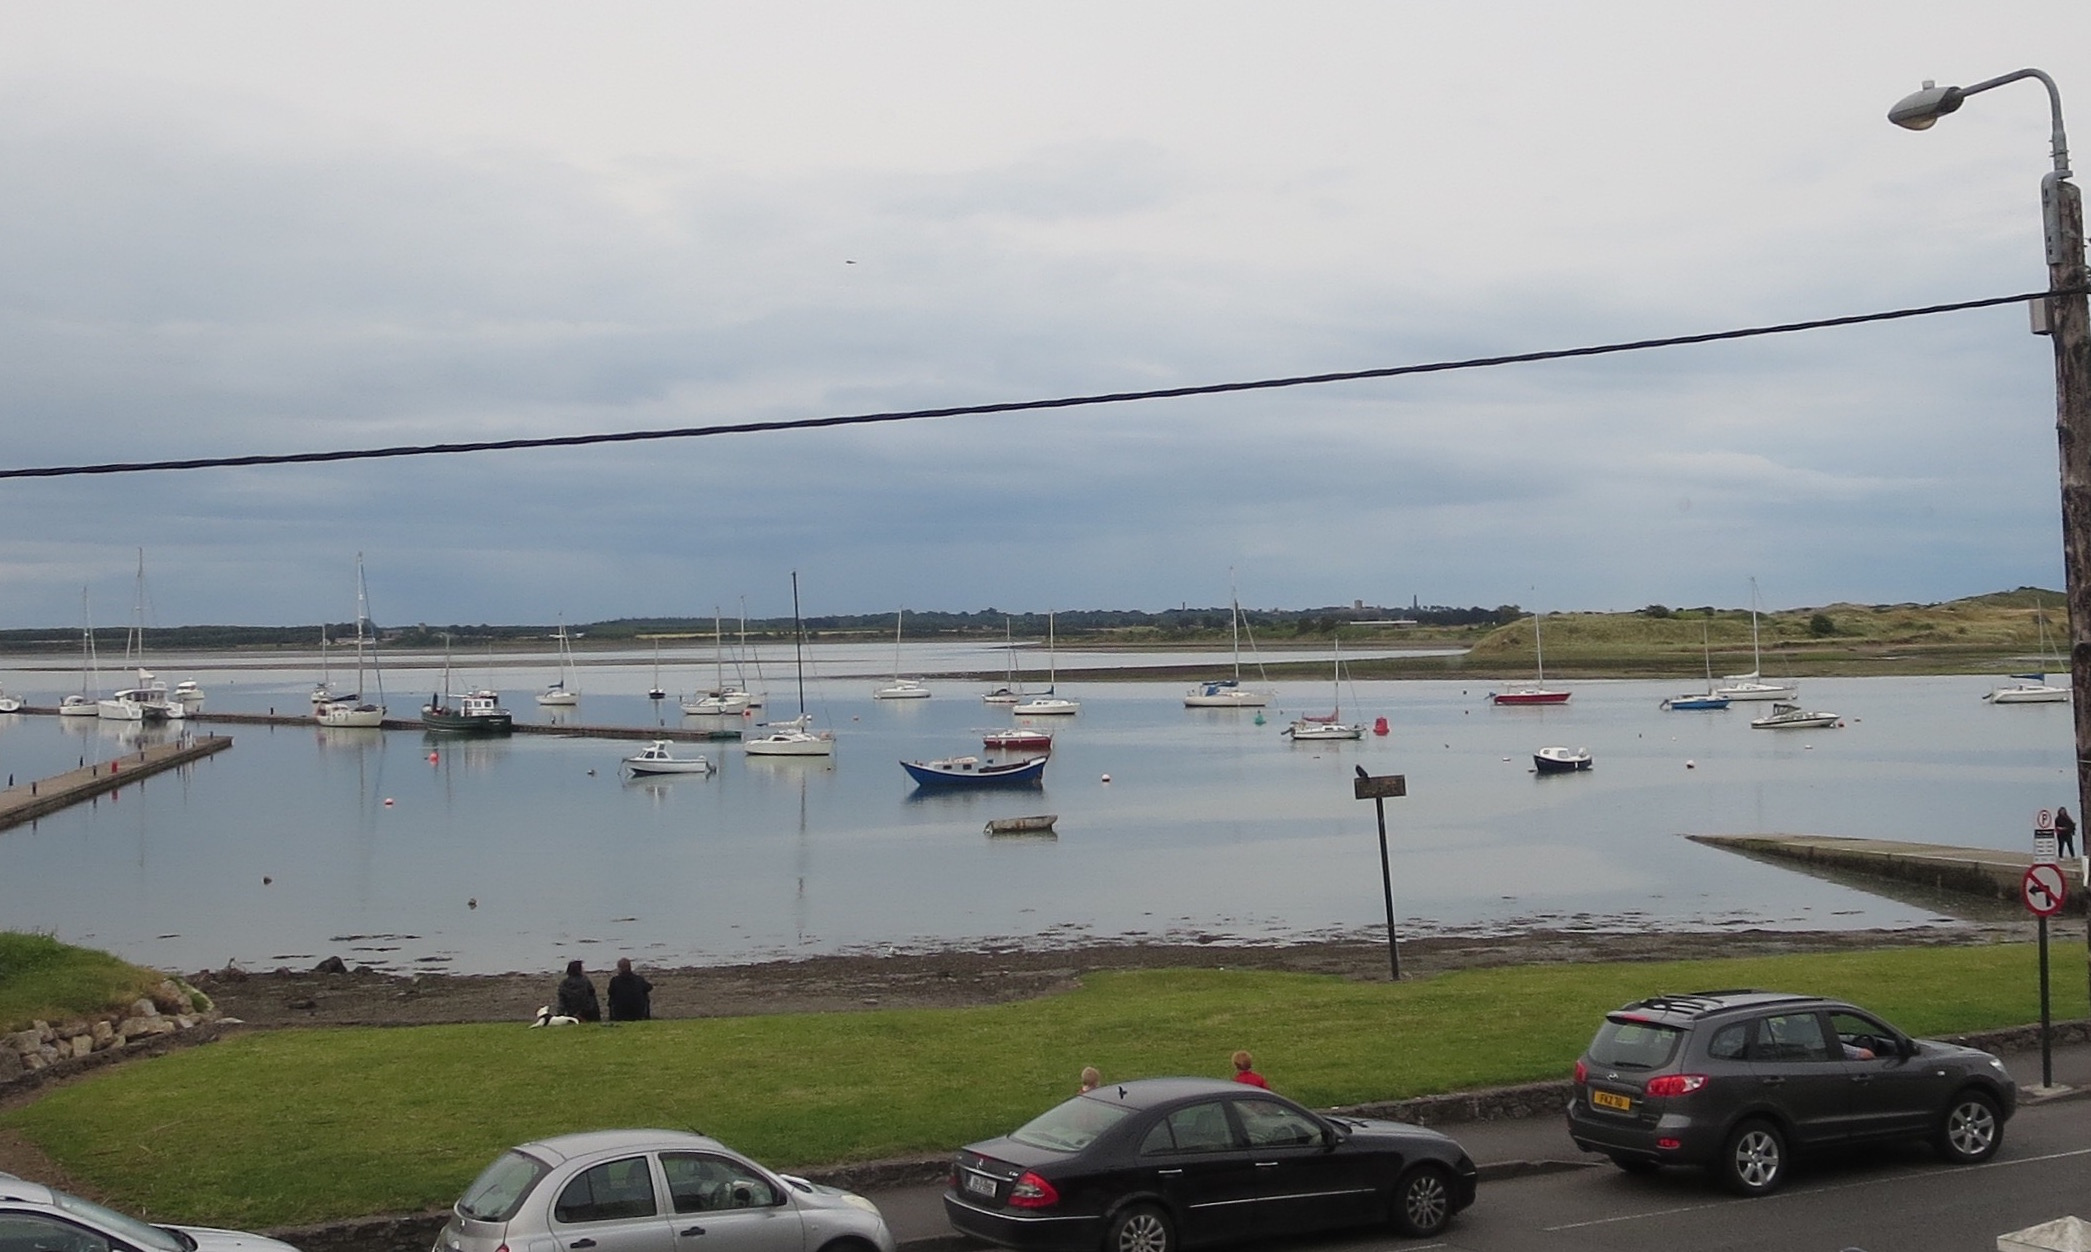 Malahide harbor, as seen from the Greedy Goose restaurant